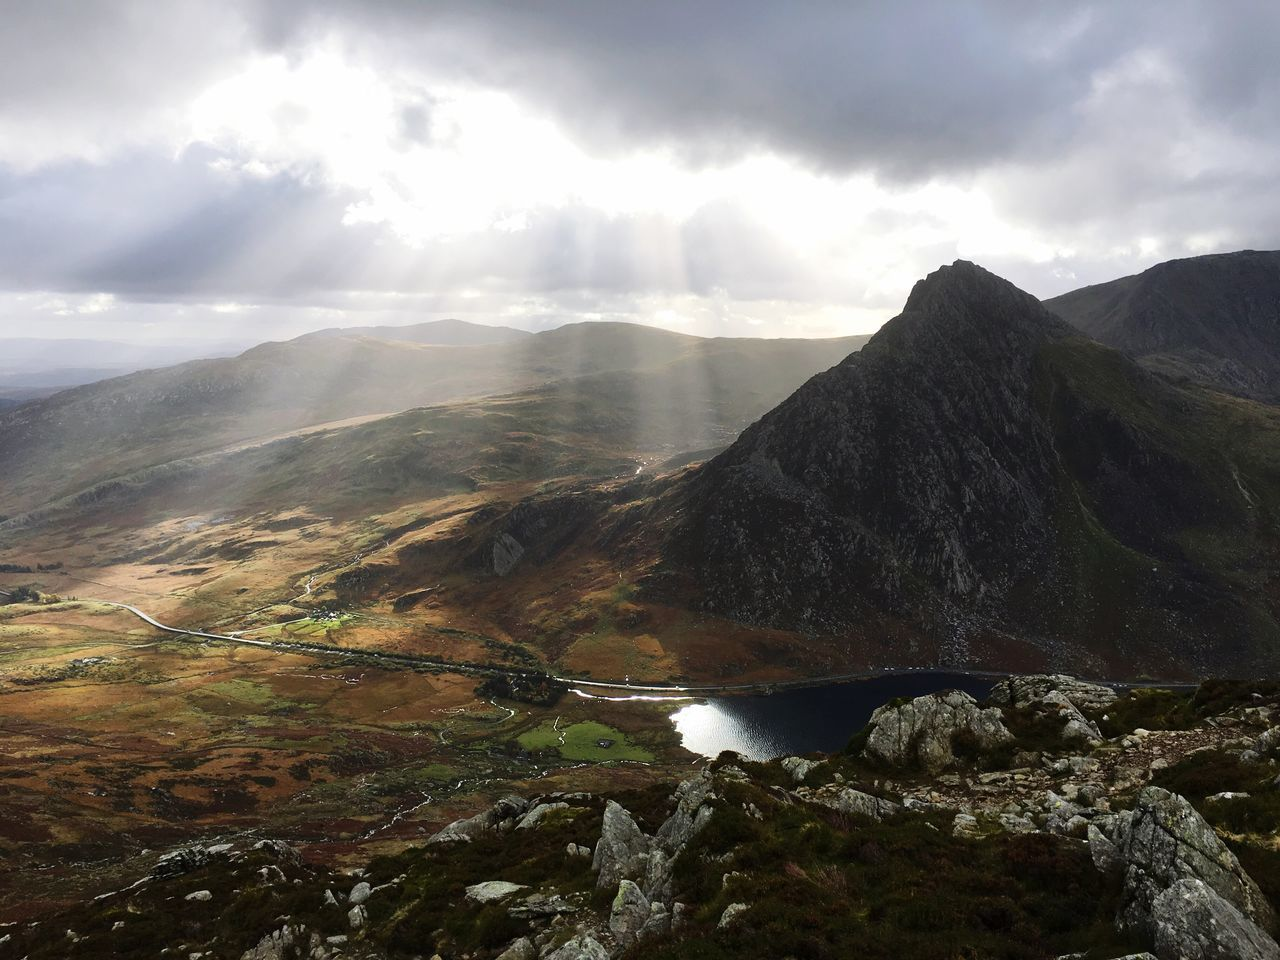 Scenics Beauty In Nature Mountain Sky Nature Landscape Mountain Range Idyllic Tranquility Trekking Hiking Adventure Wales Snowdonia National Park Snowdonia Tryfan Sunlight Sunlight And Clouds Clouds